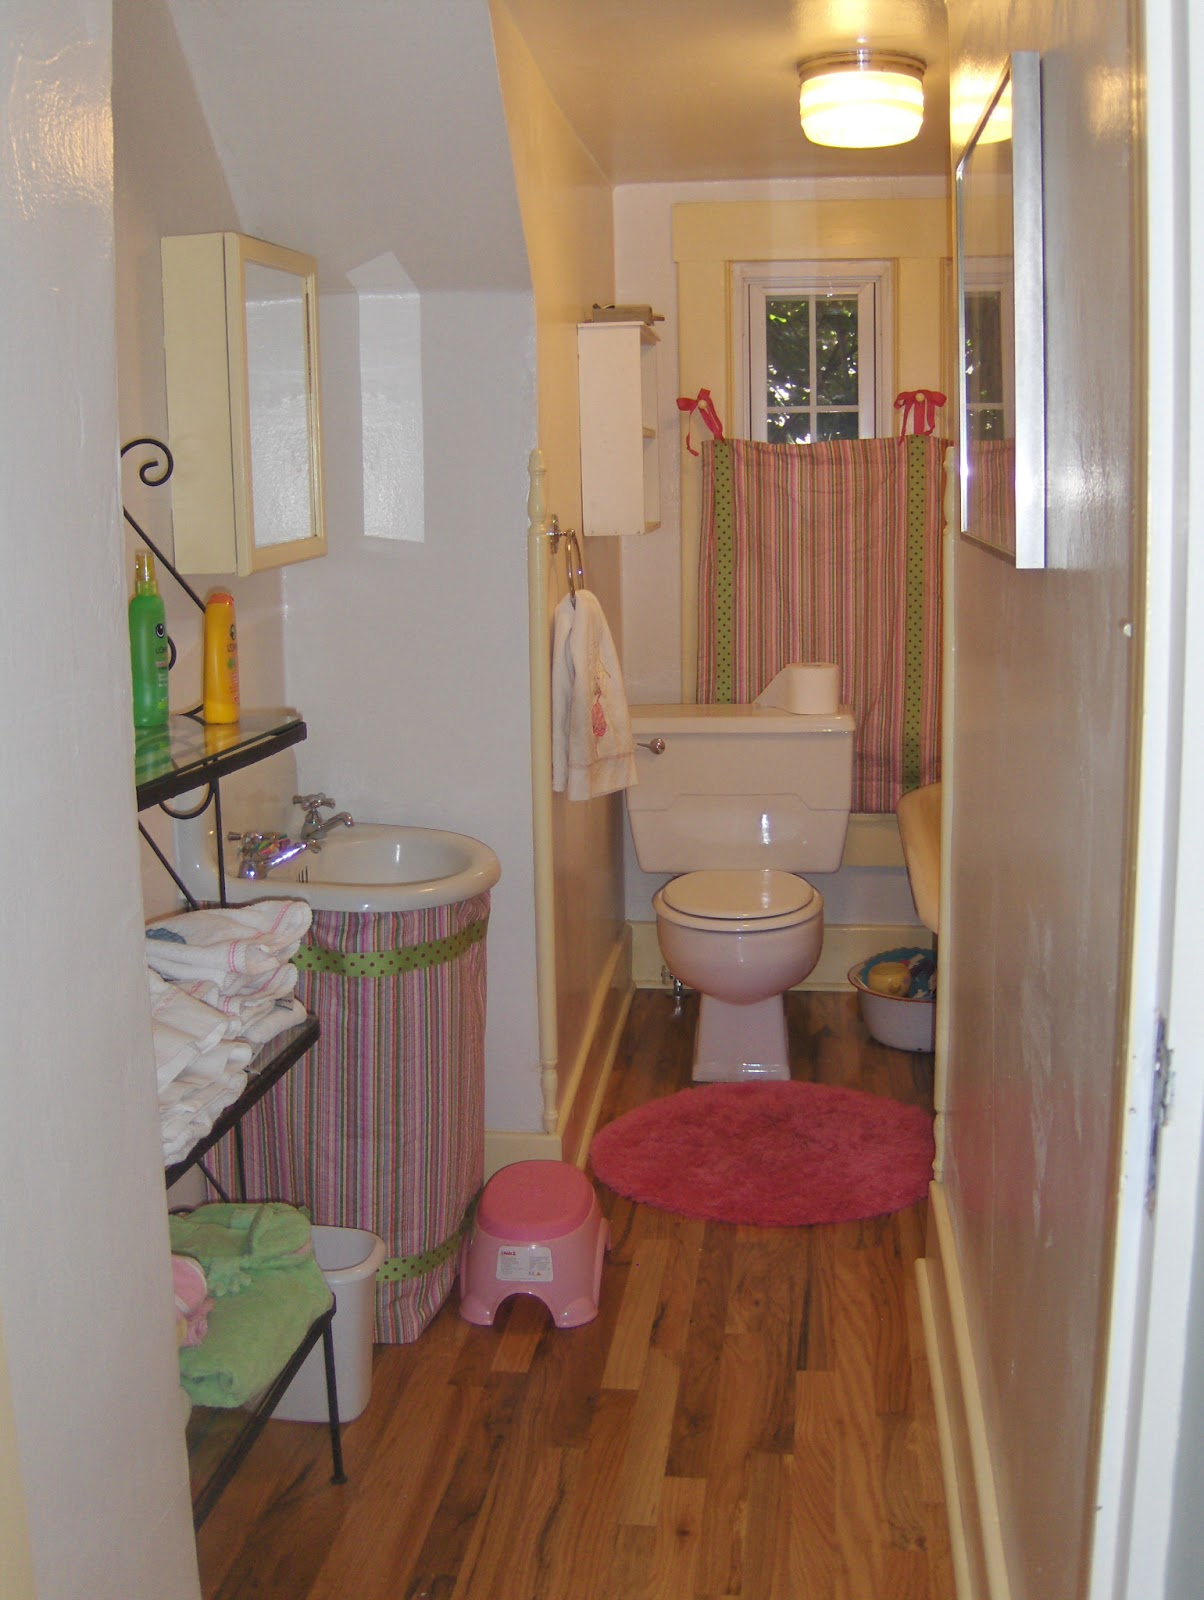 A marmie life very small bathroom remodel for Small restroom remodel ideas